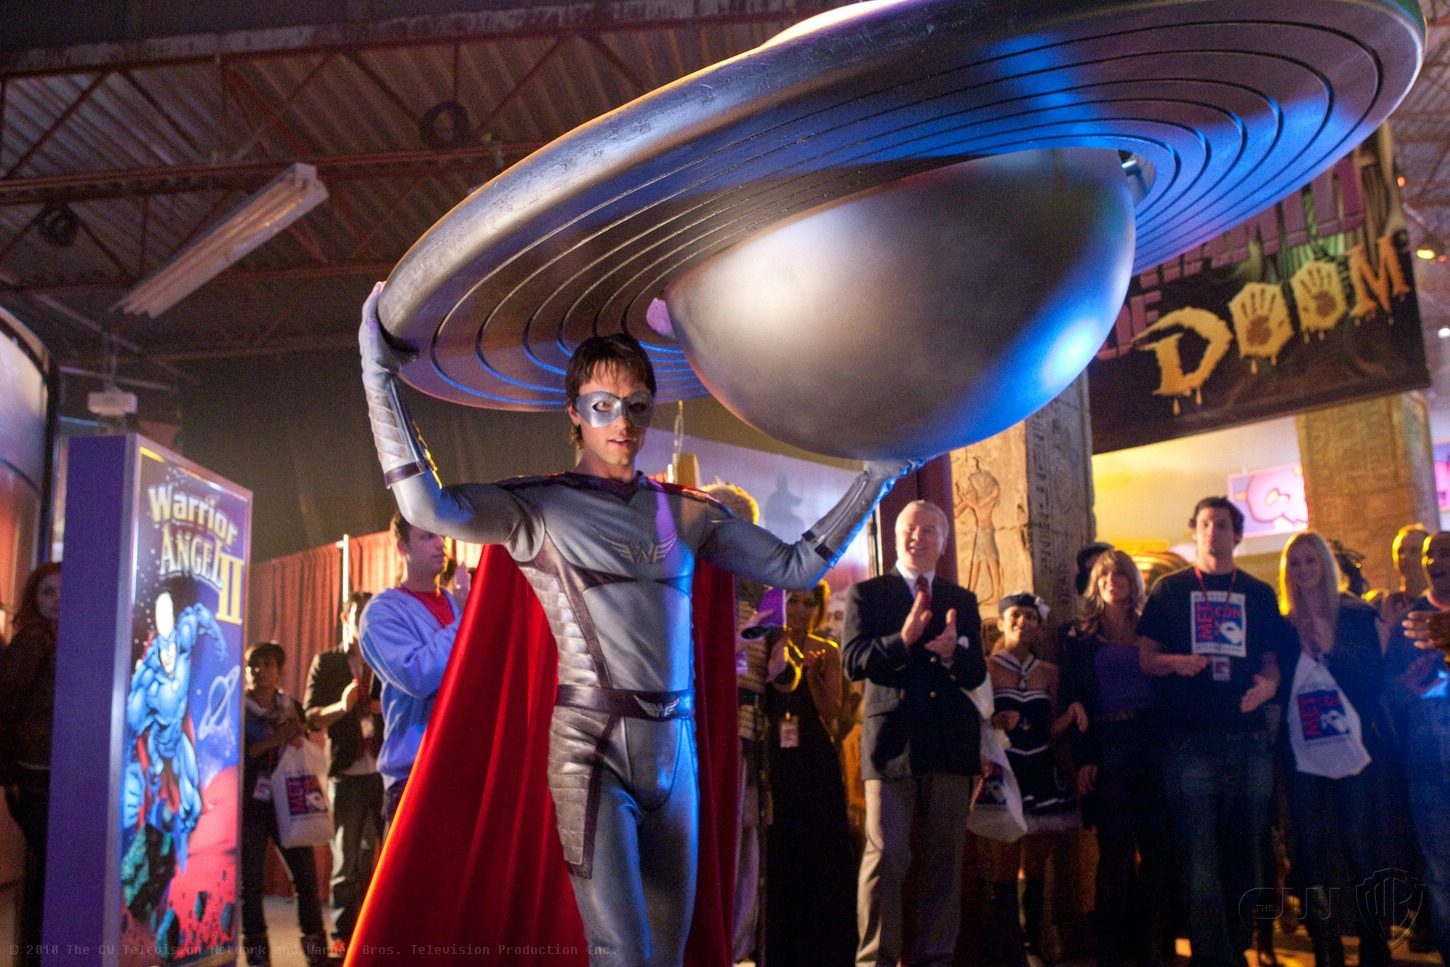 Smallville (TV Series) Episode: Warrior